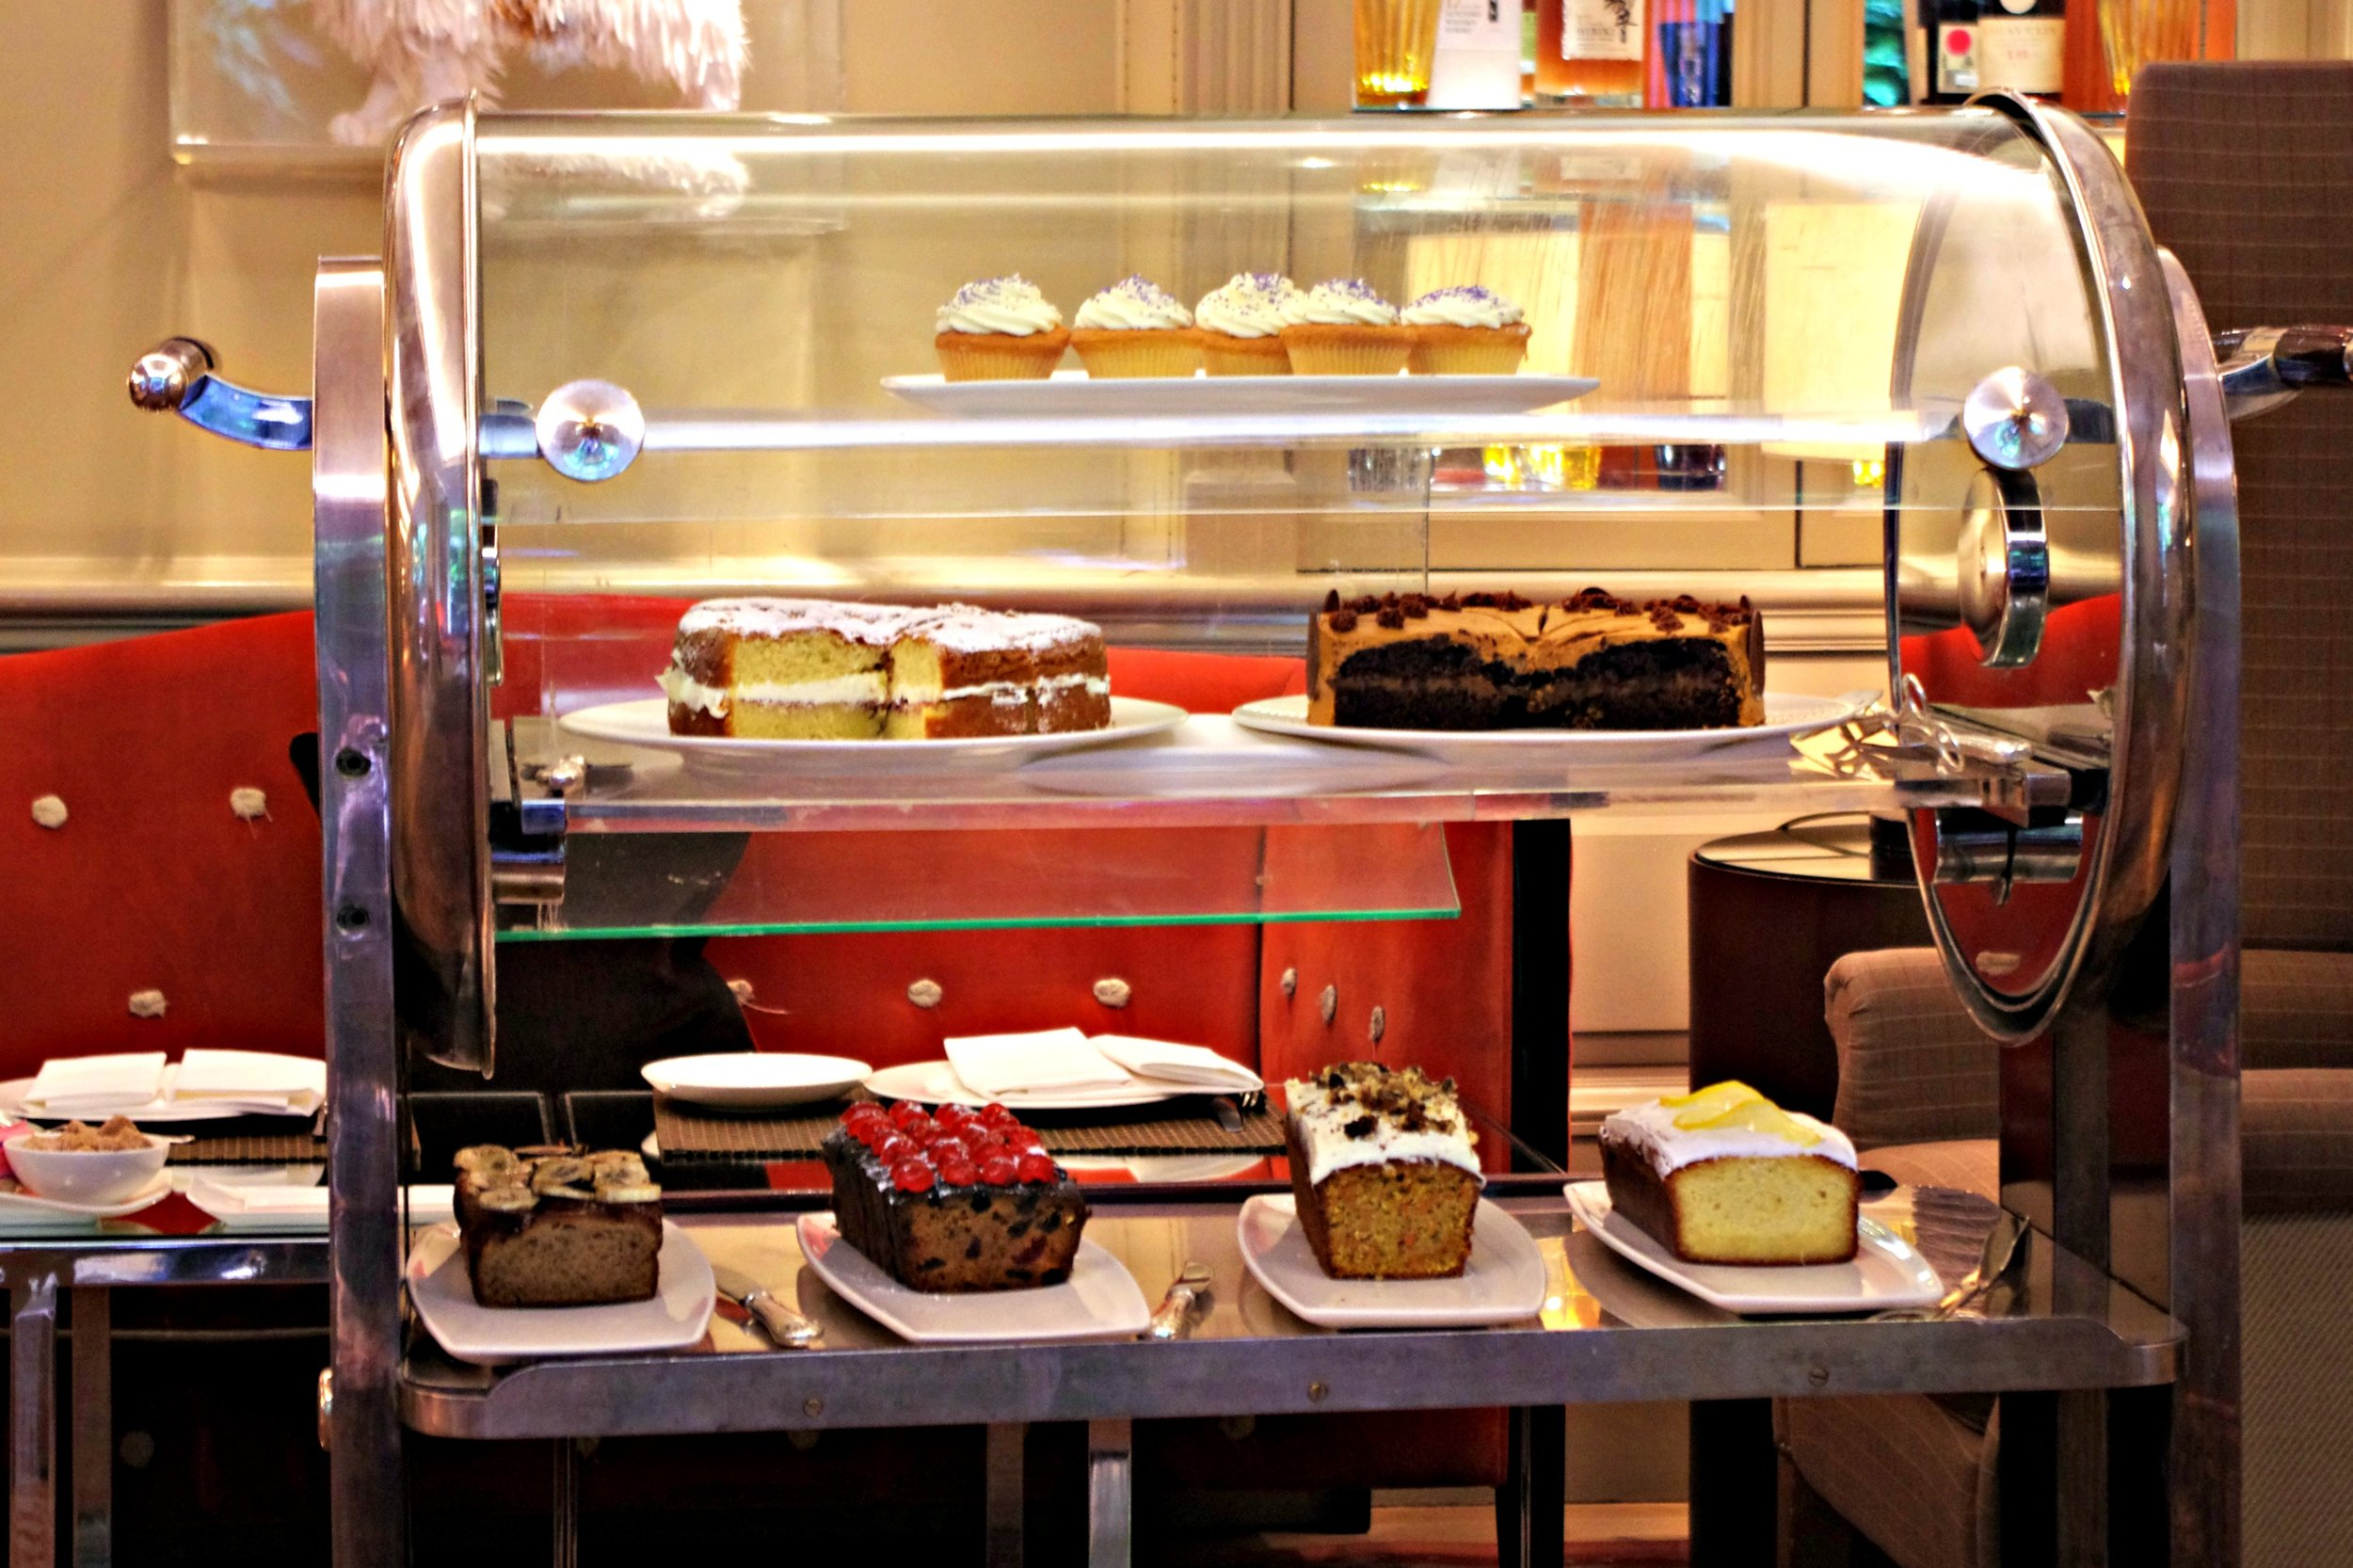 tray with cakes